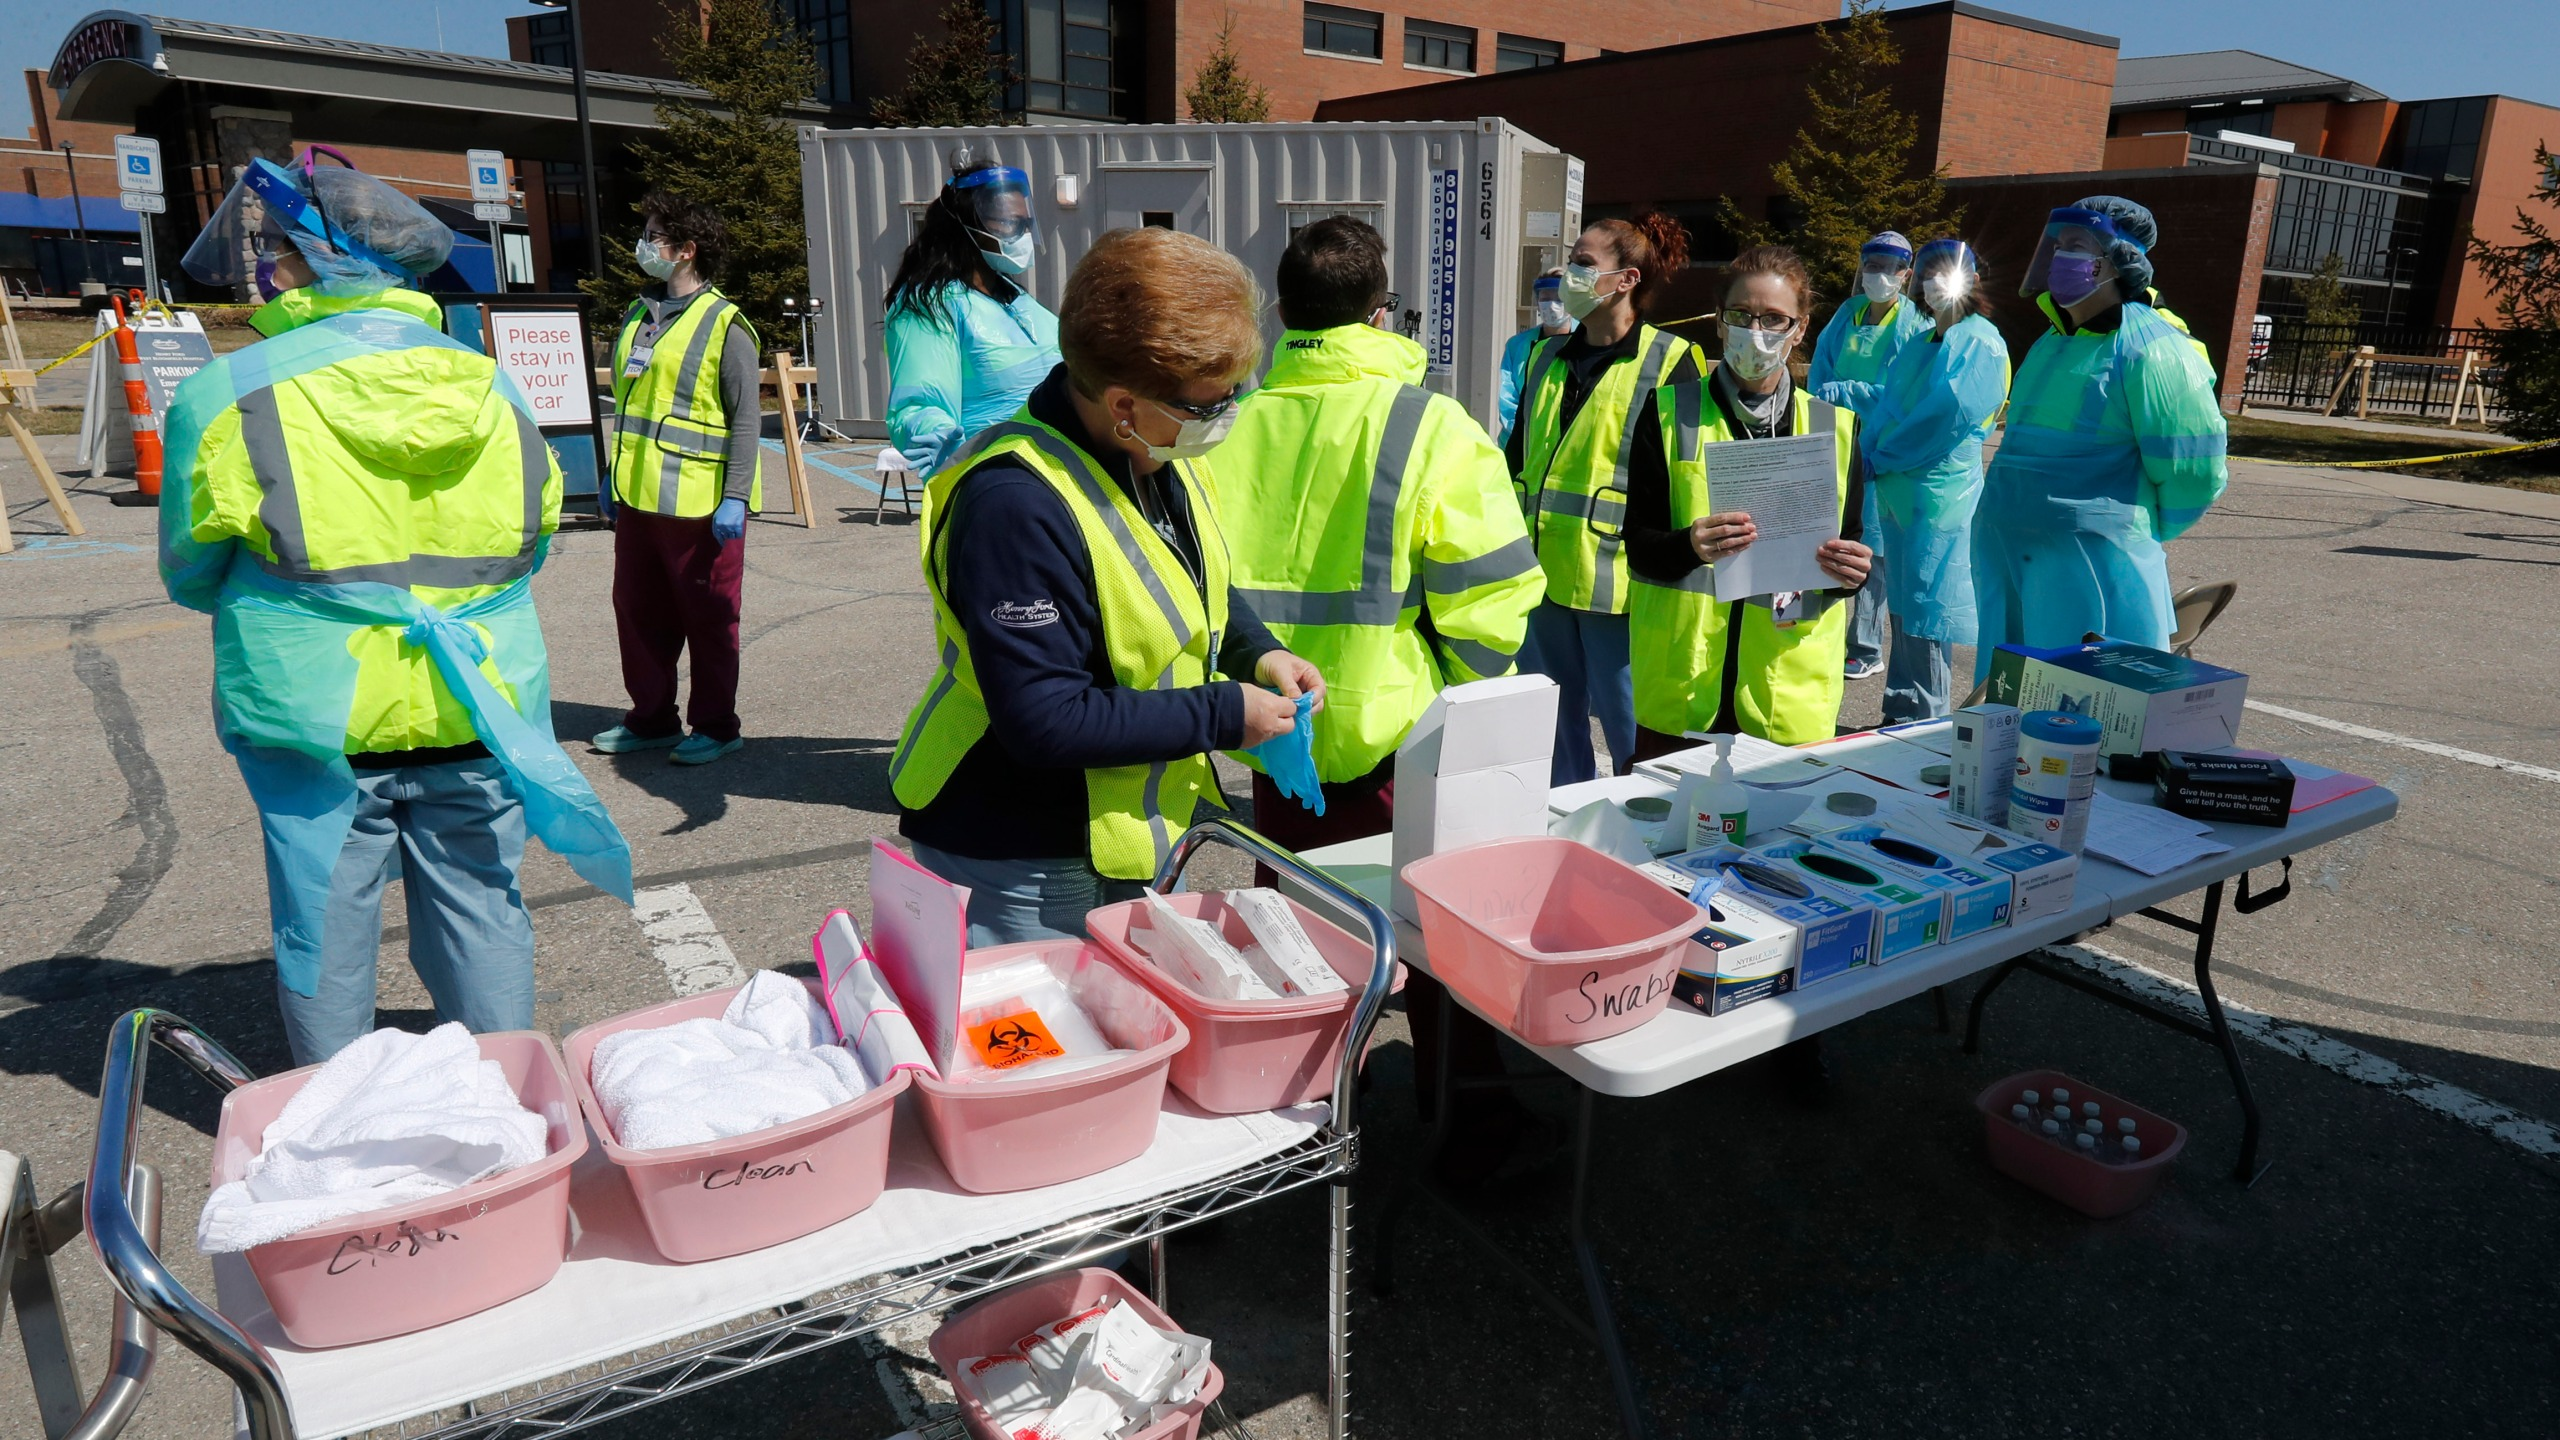 Healthcare workers prepare their supplies at a COVID-19 drive-thru testing site at Henry Ford West Bloomfield Hospital, Wednesday, March 25, 2020, in West Bloomfield, Mich. (AP Photo/Carlos Osorio)